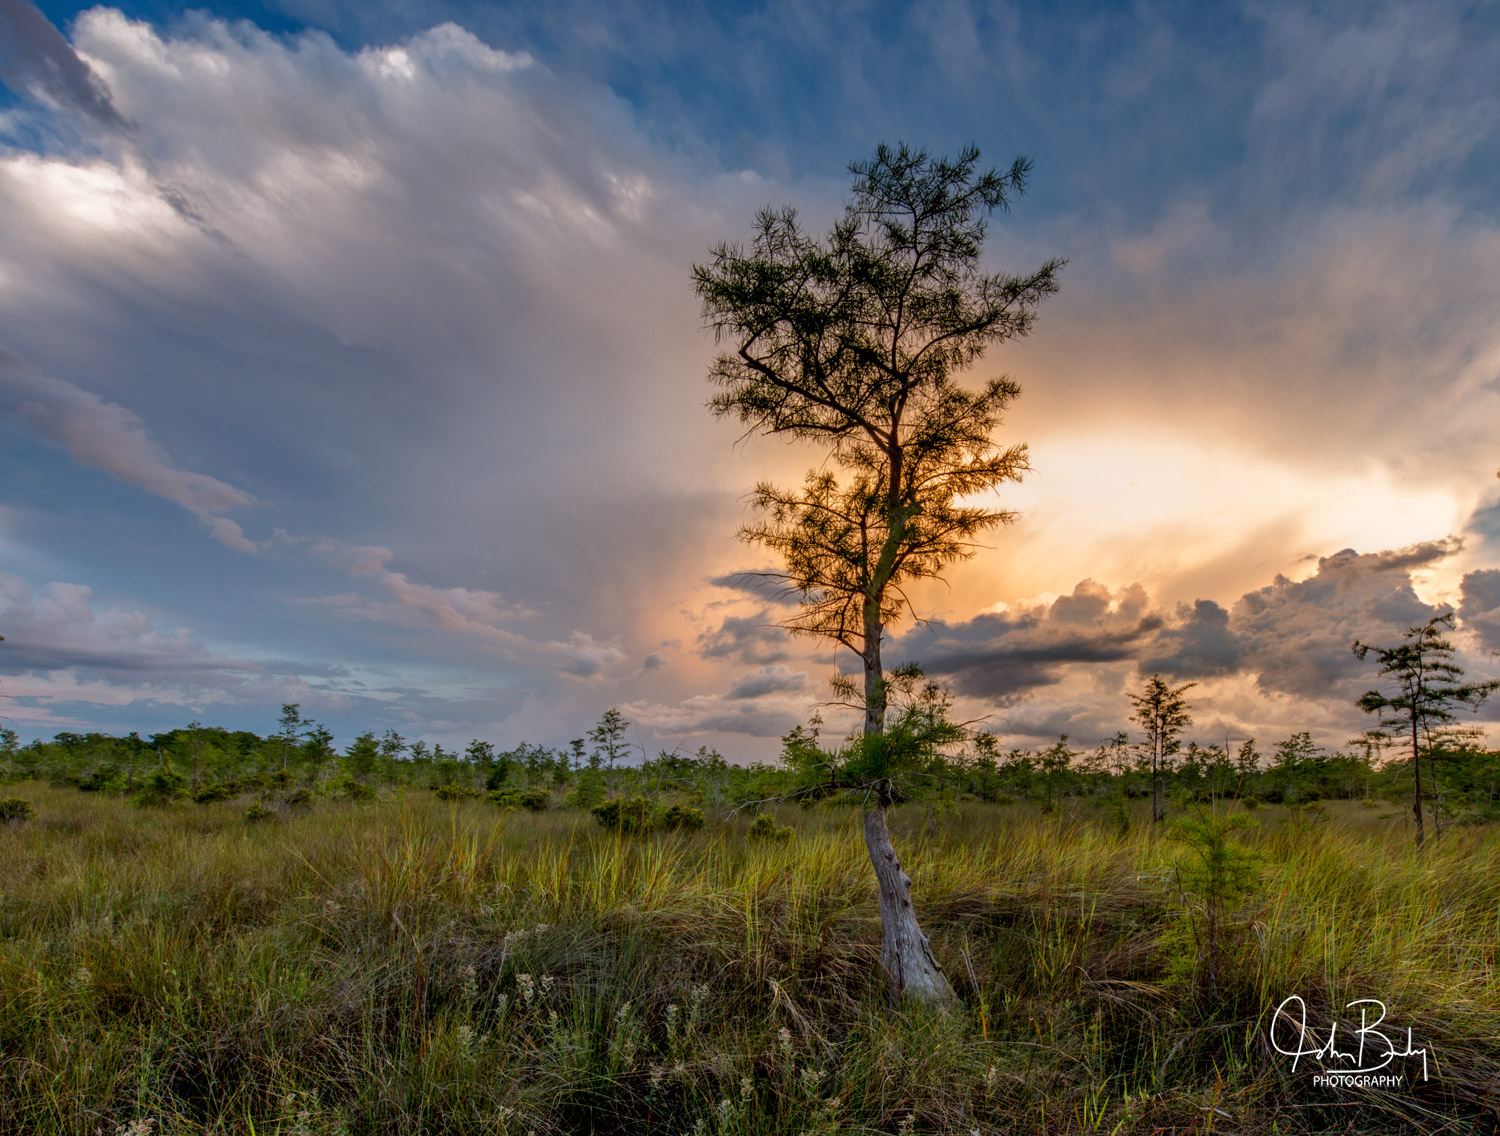 Located on the Western side of the Everglades, the 729,000-acre Big Cypress National Preserve is larger than the District of...